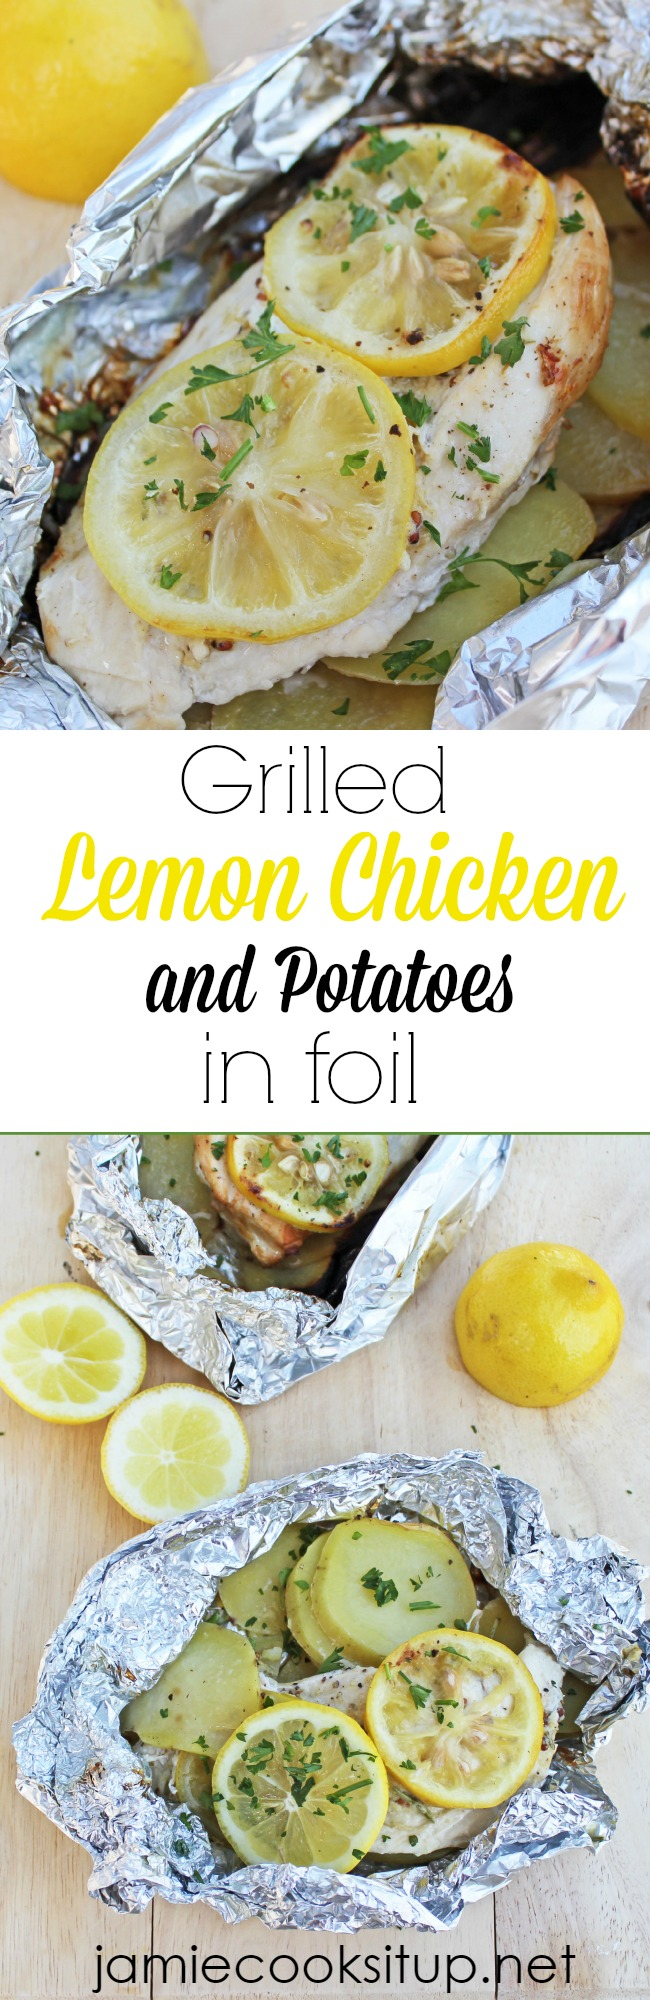 Foil lemon chicken recipe